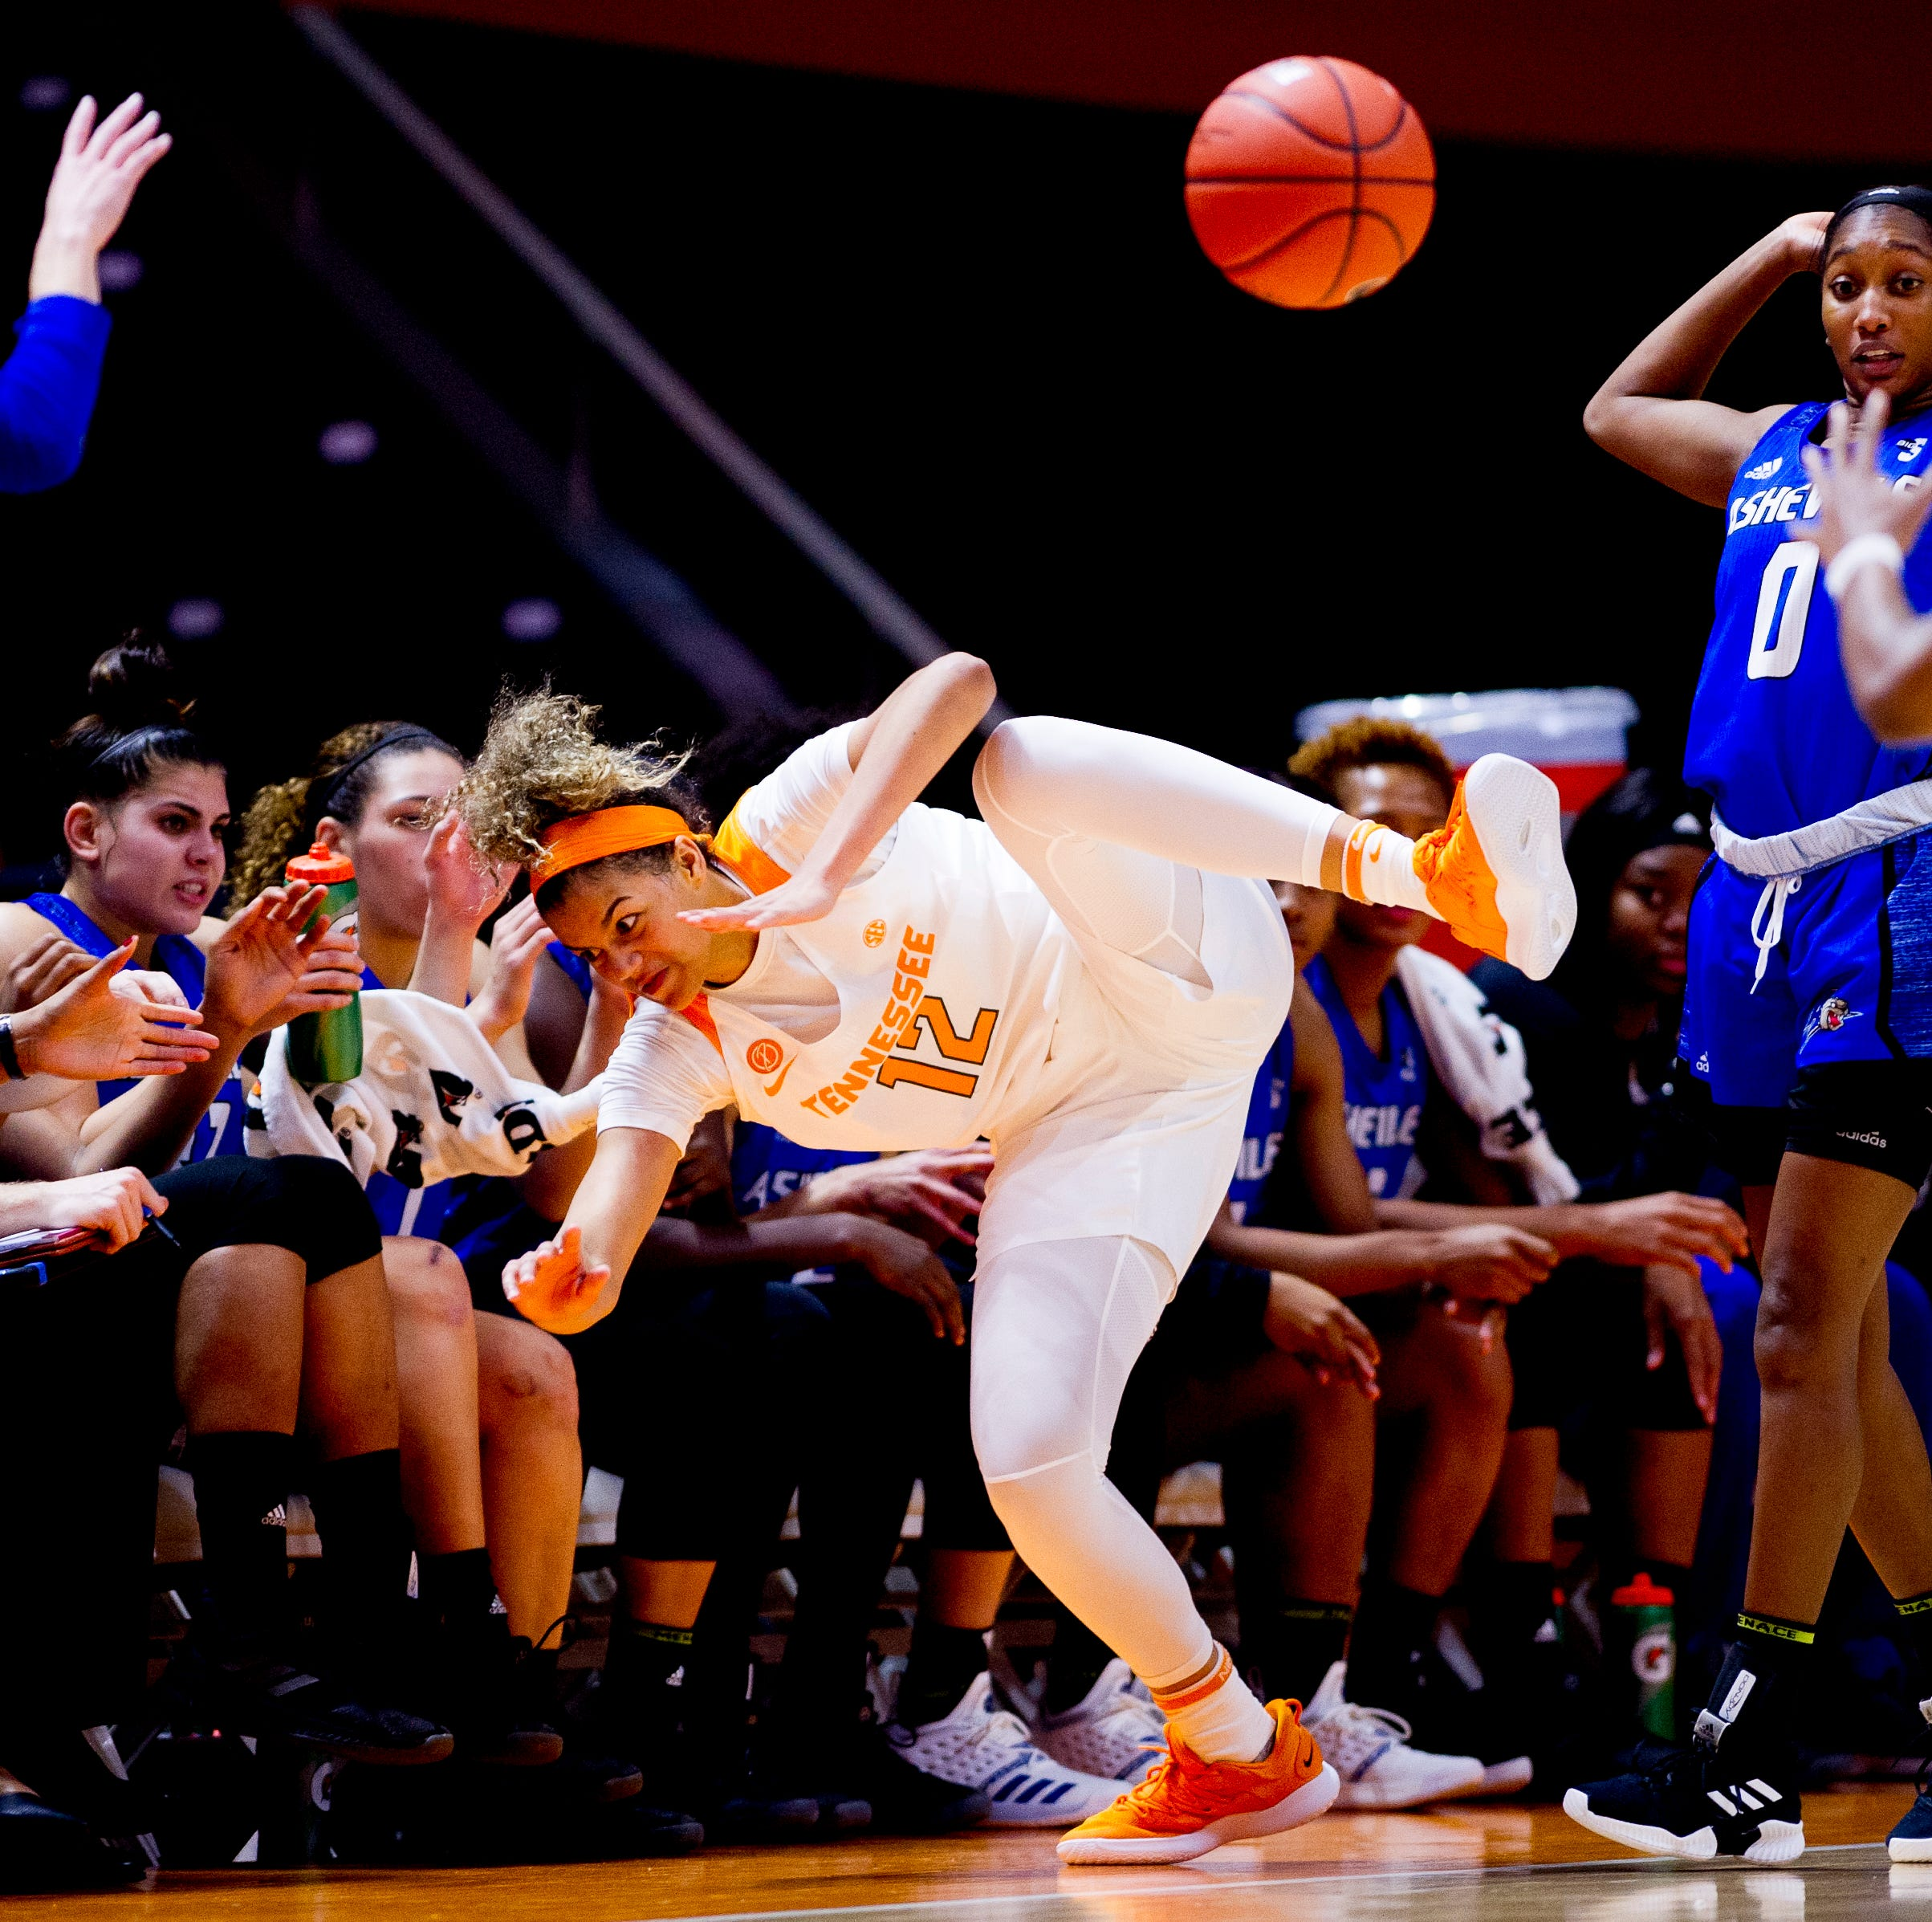 Lady Vols: Strong first half covers for second-half struggles in win over UNC Asheville